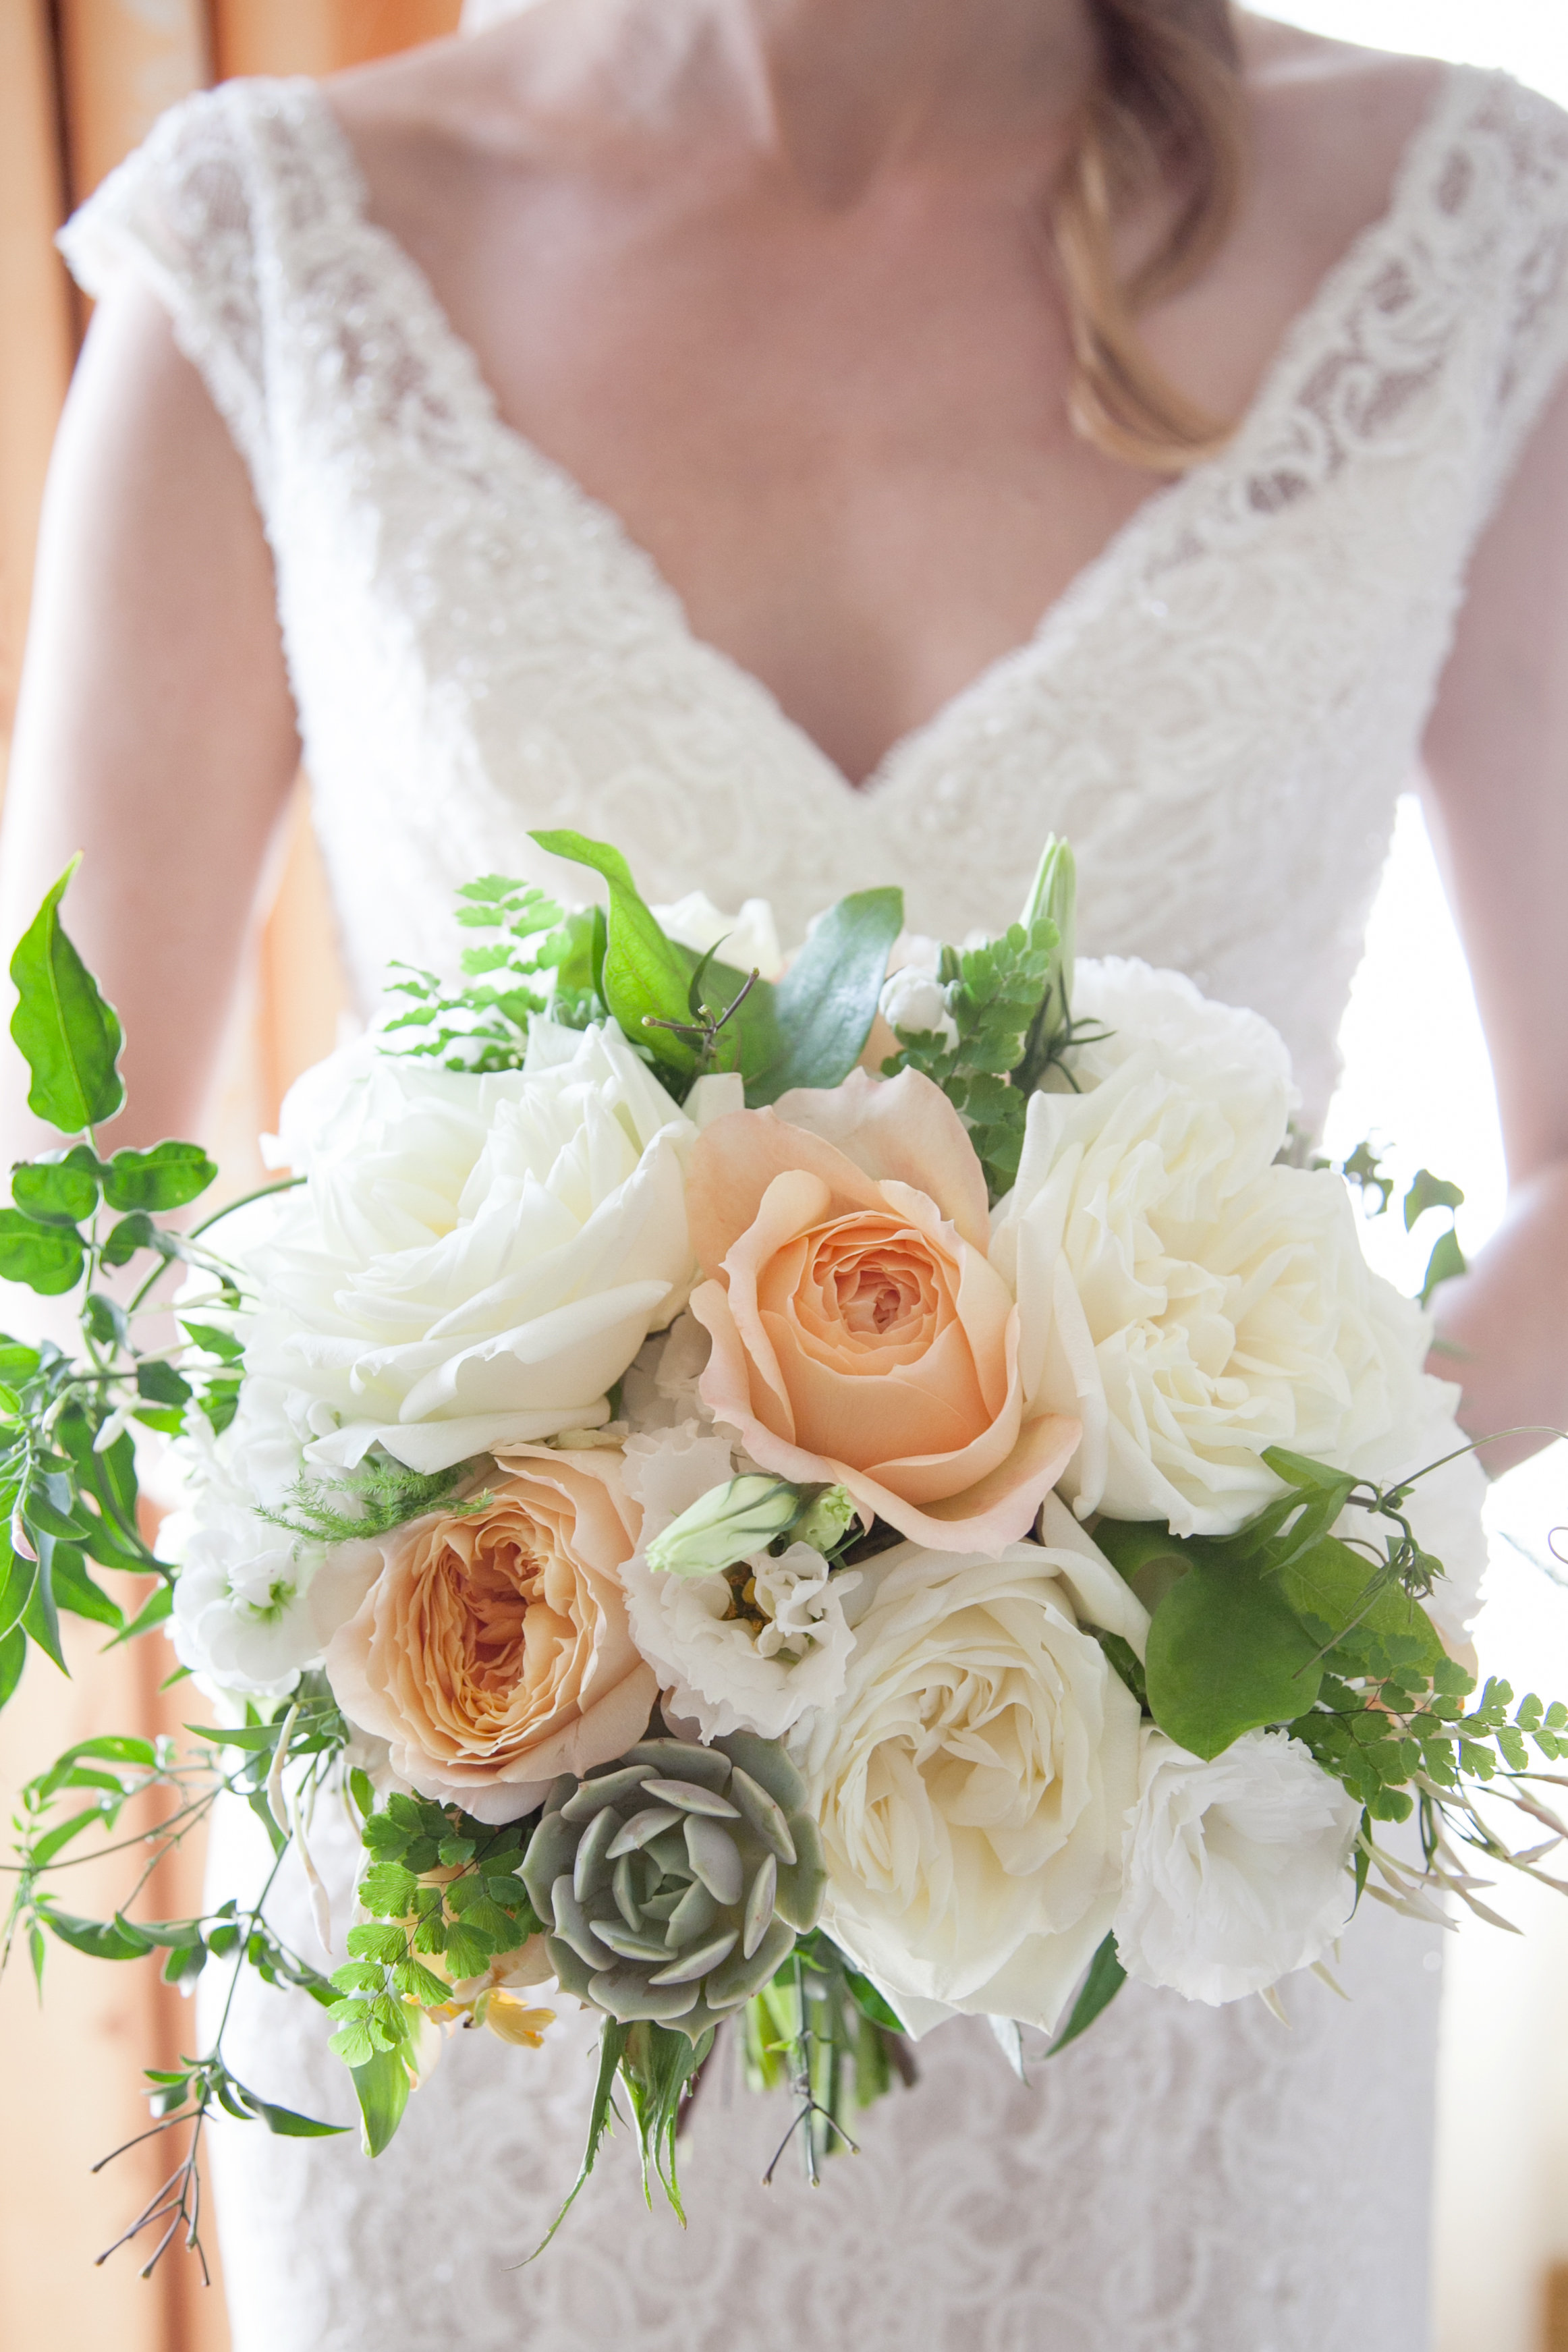 Peach, cream and succulent bridal bouquet wedding Meo Baaklini Photography